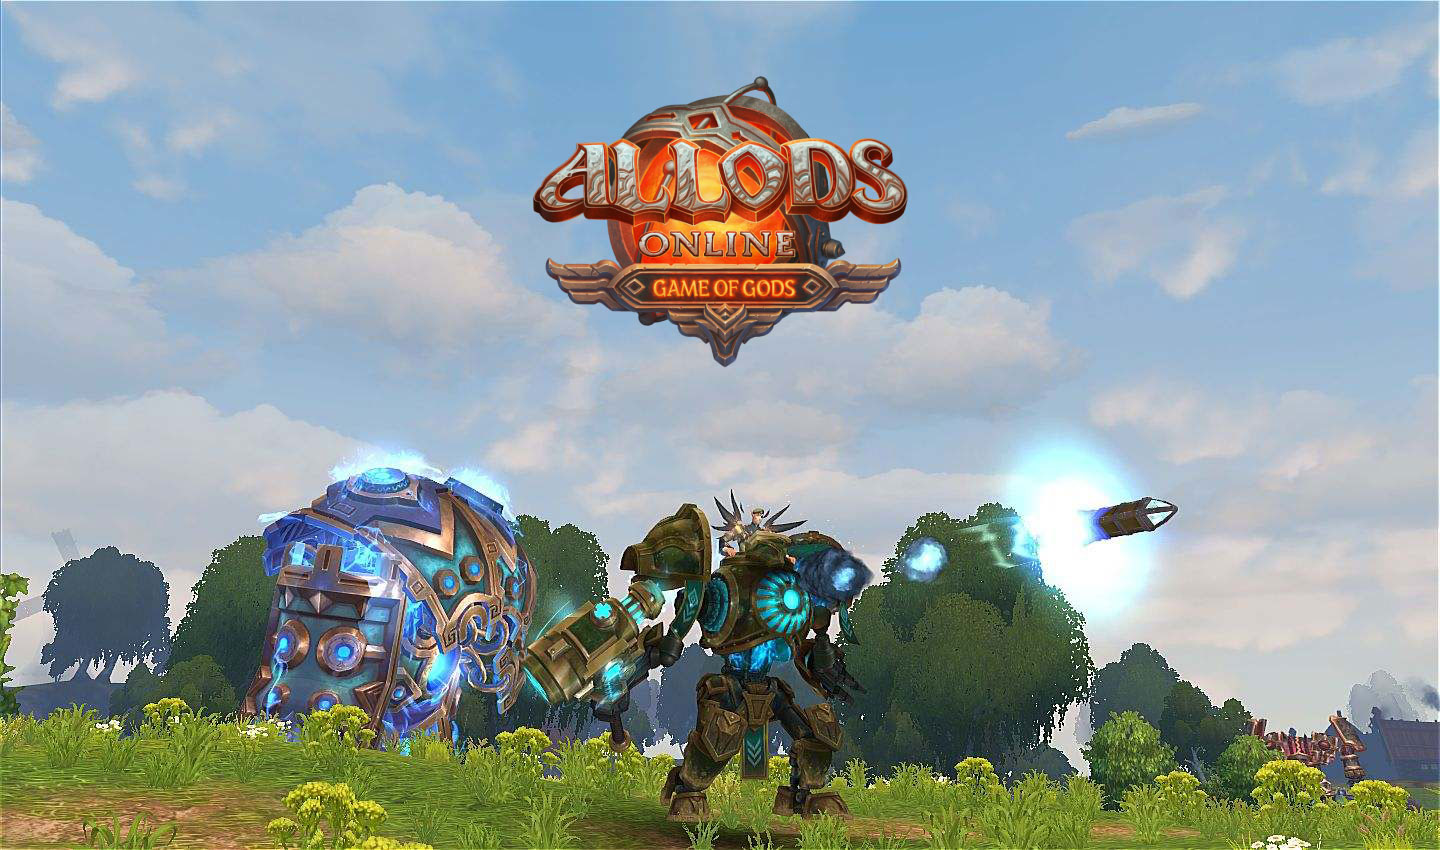 Allods Online Autumn Wind